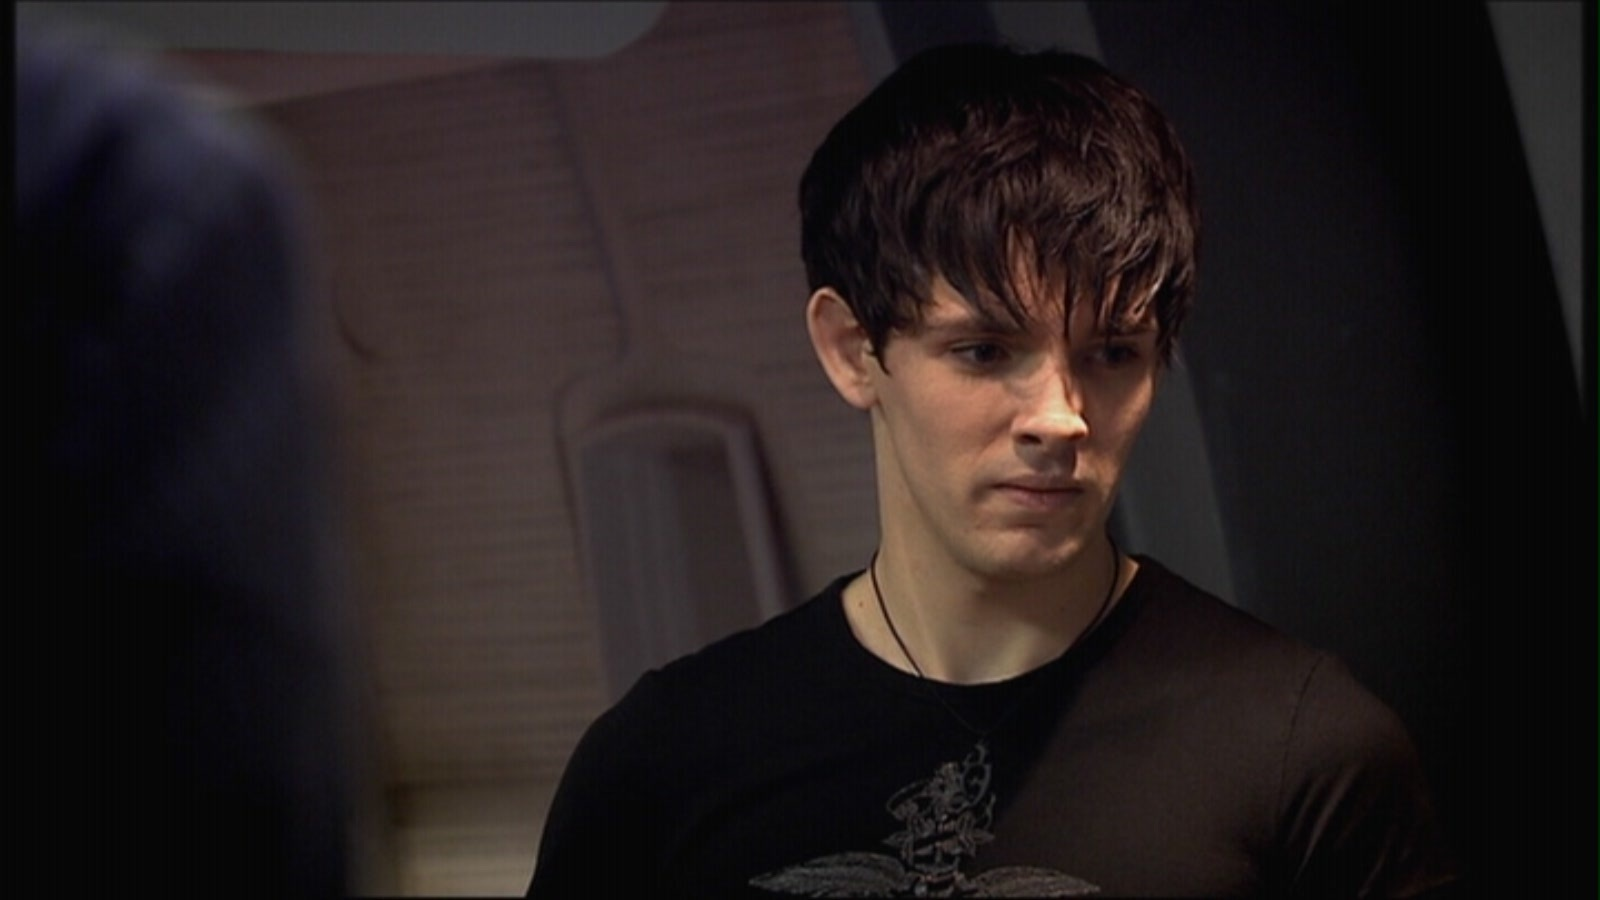 Doctor Who Colin Morgan Image 9919966 Fanpop